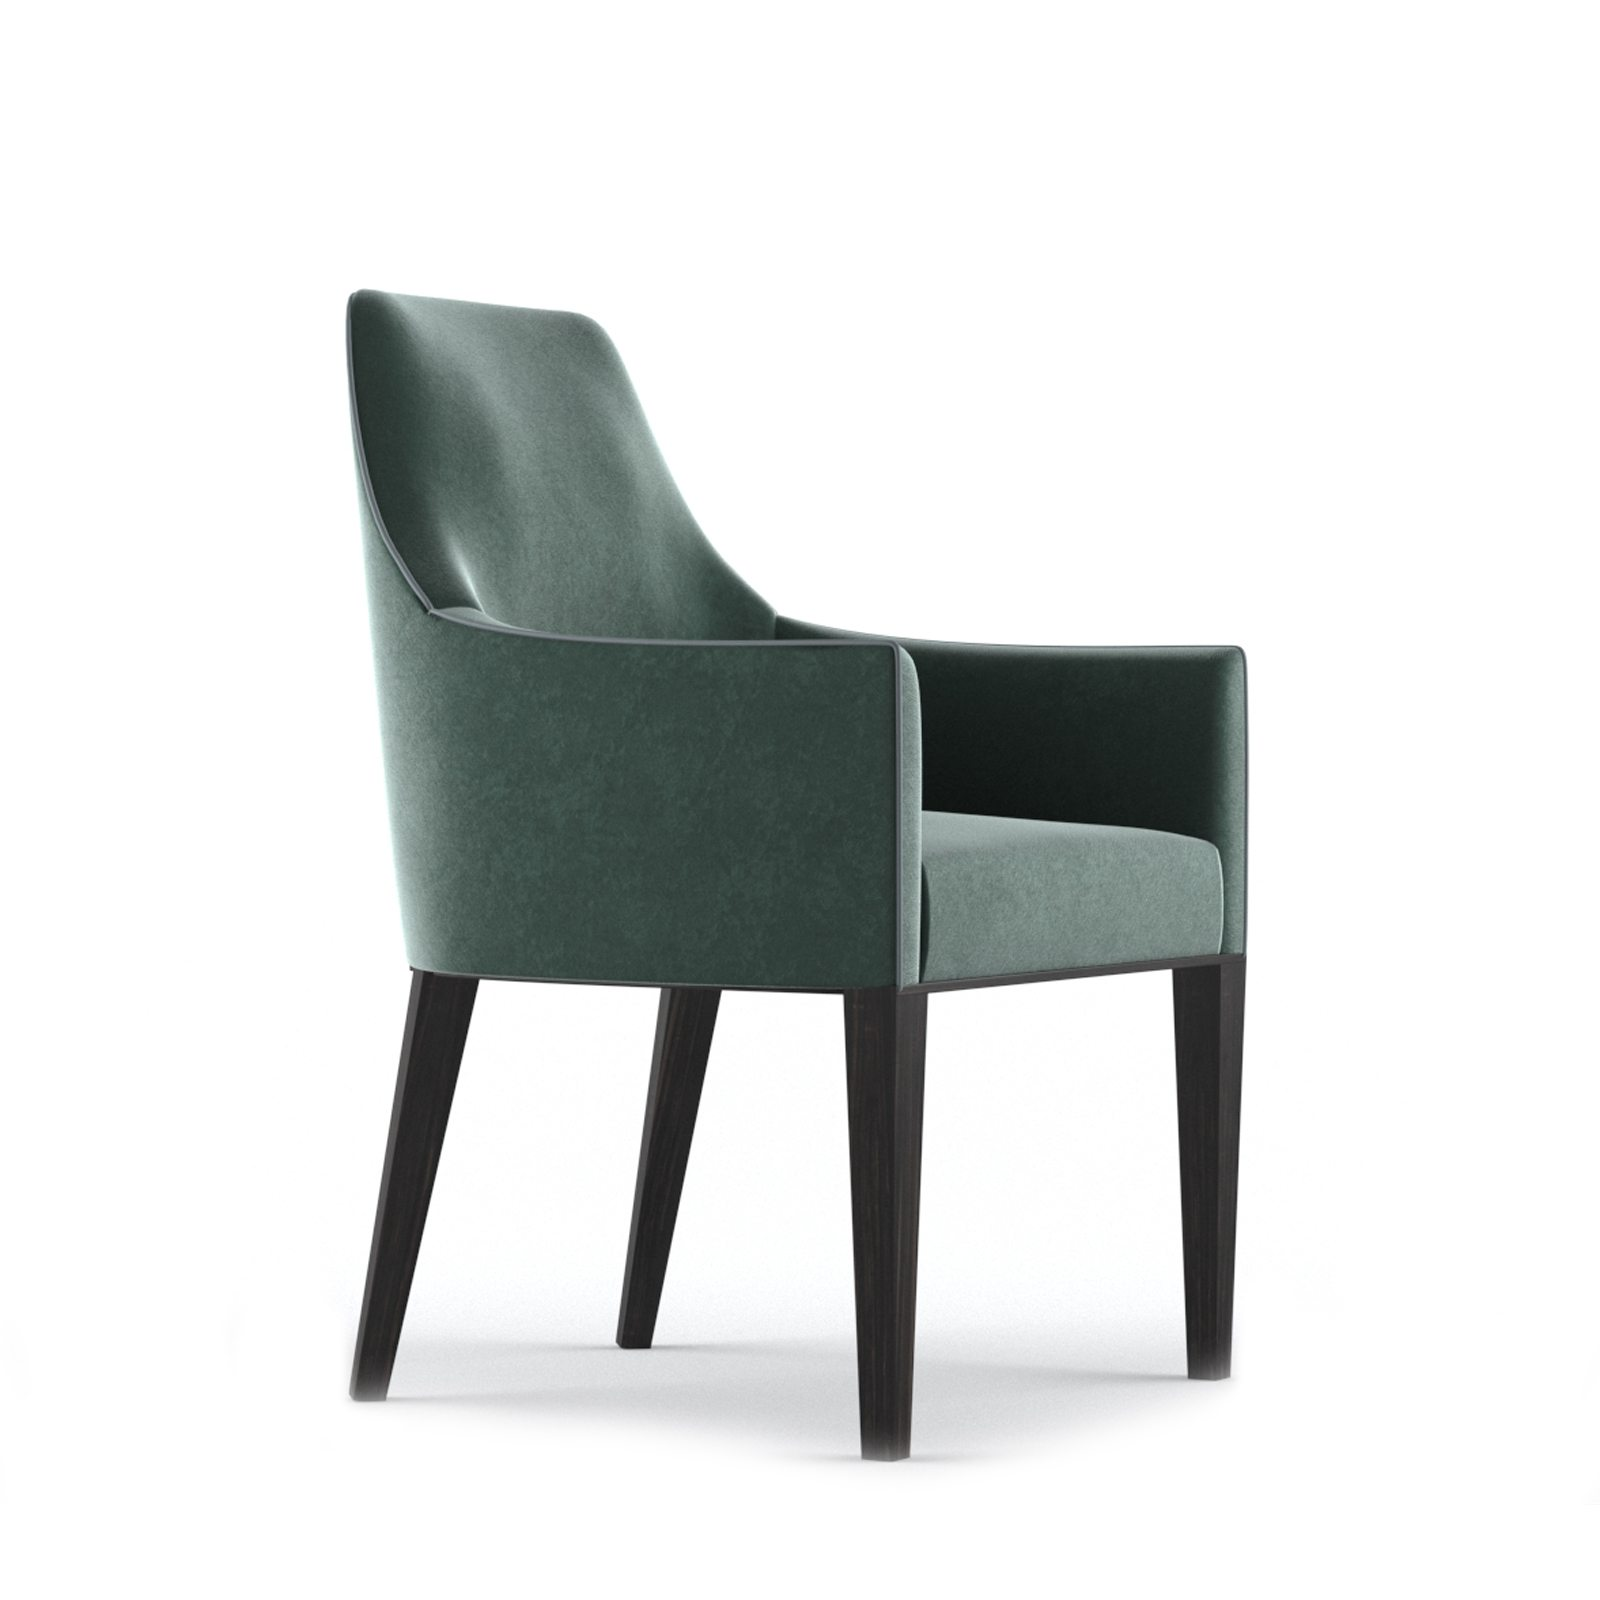 Balfour-Carver-Chair-by-Bonham-&-Bonham-10